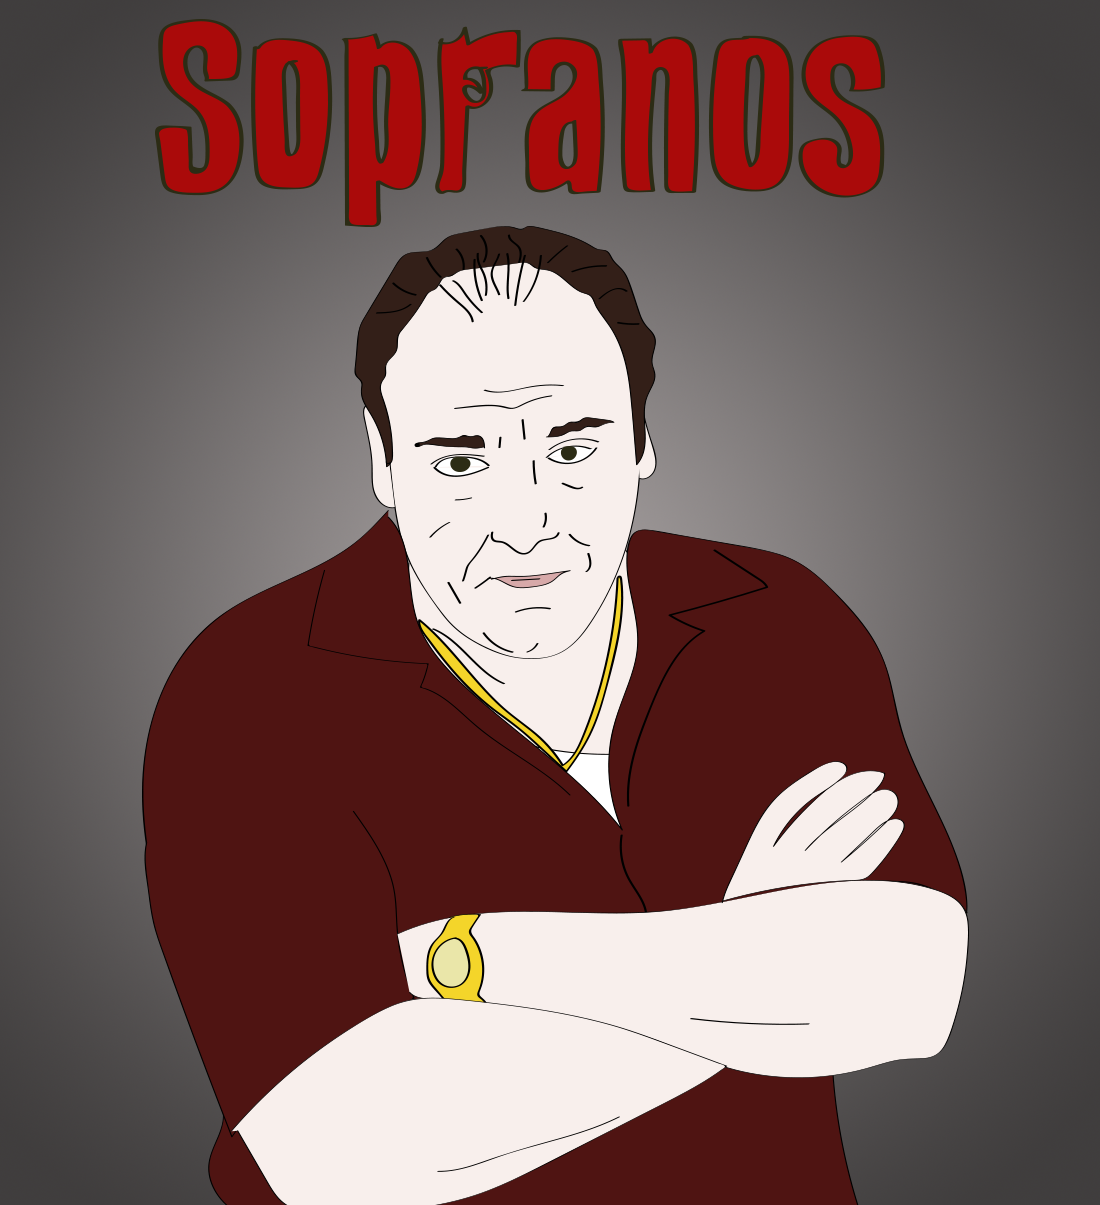 The Sopranos illustration, Drawn for You